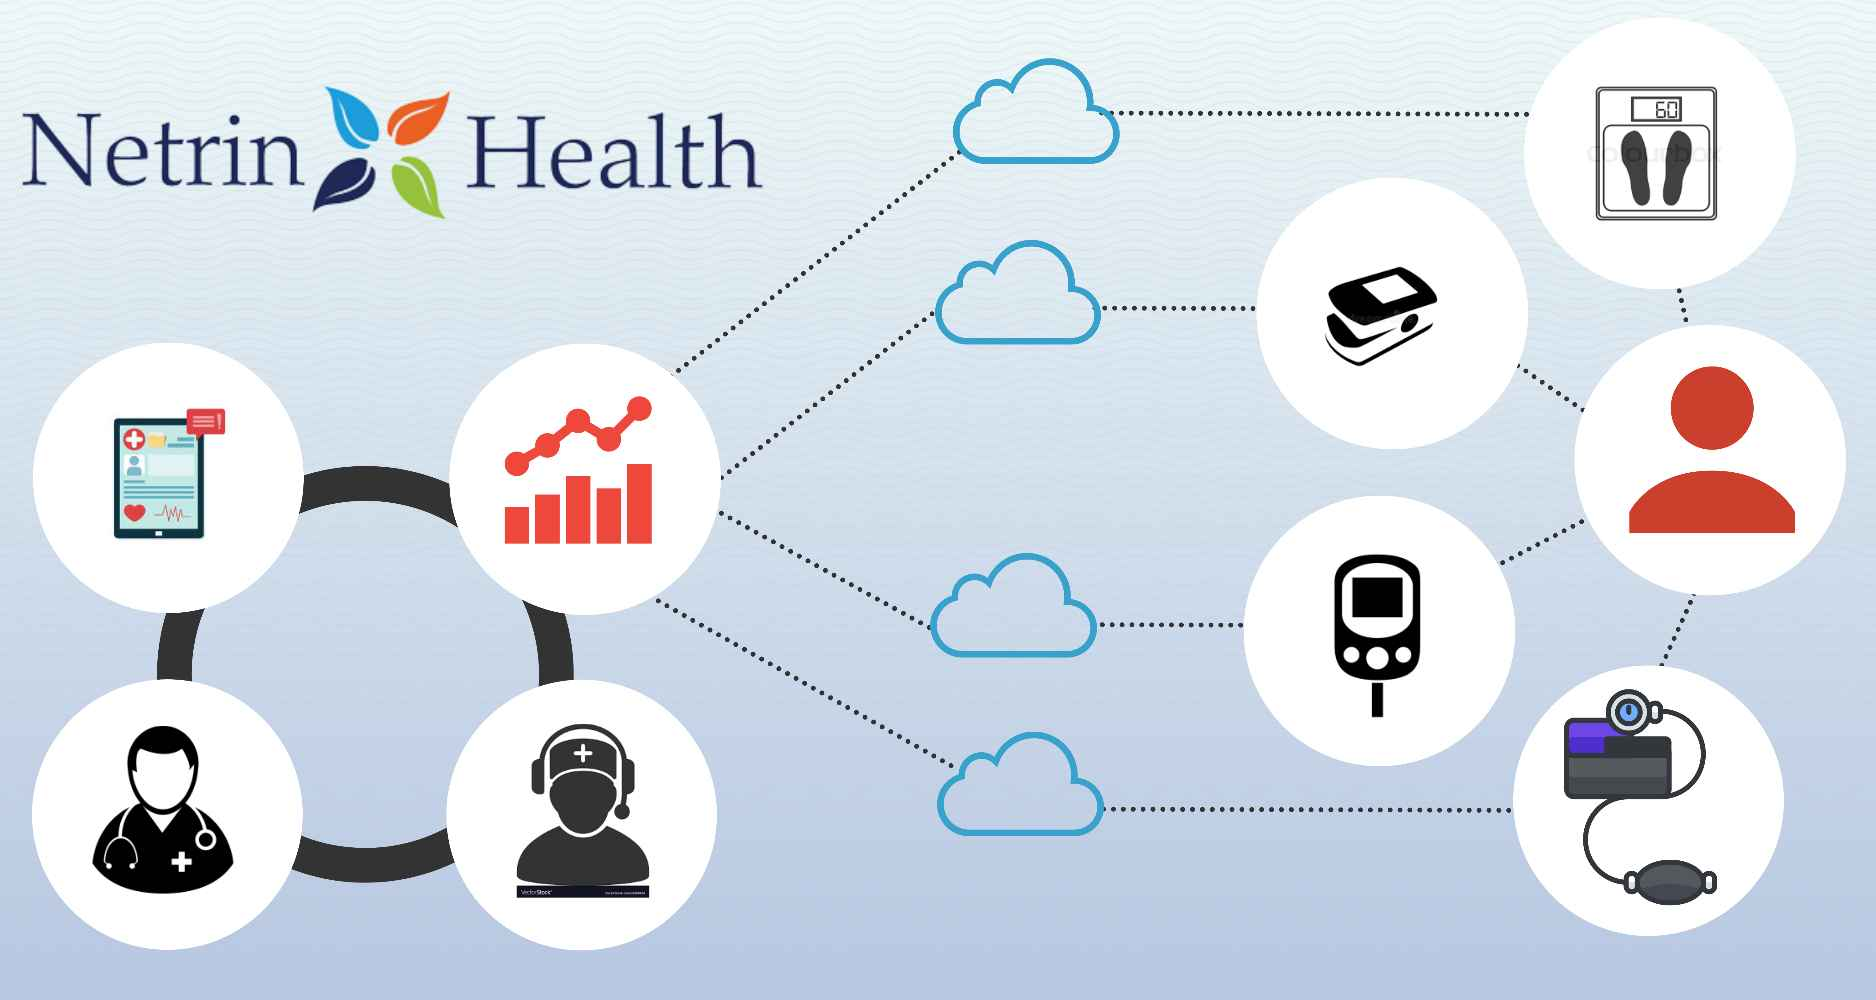 Remote patient monitoring to support chronic care